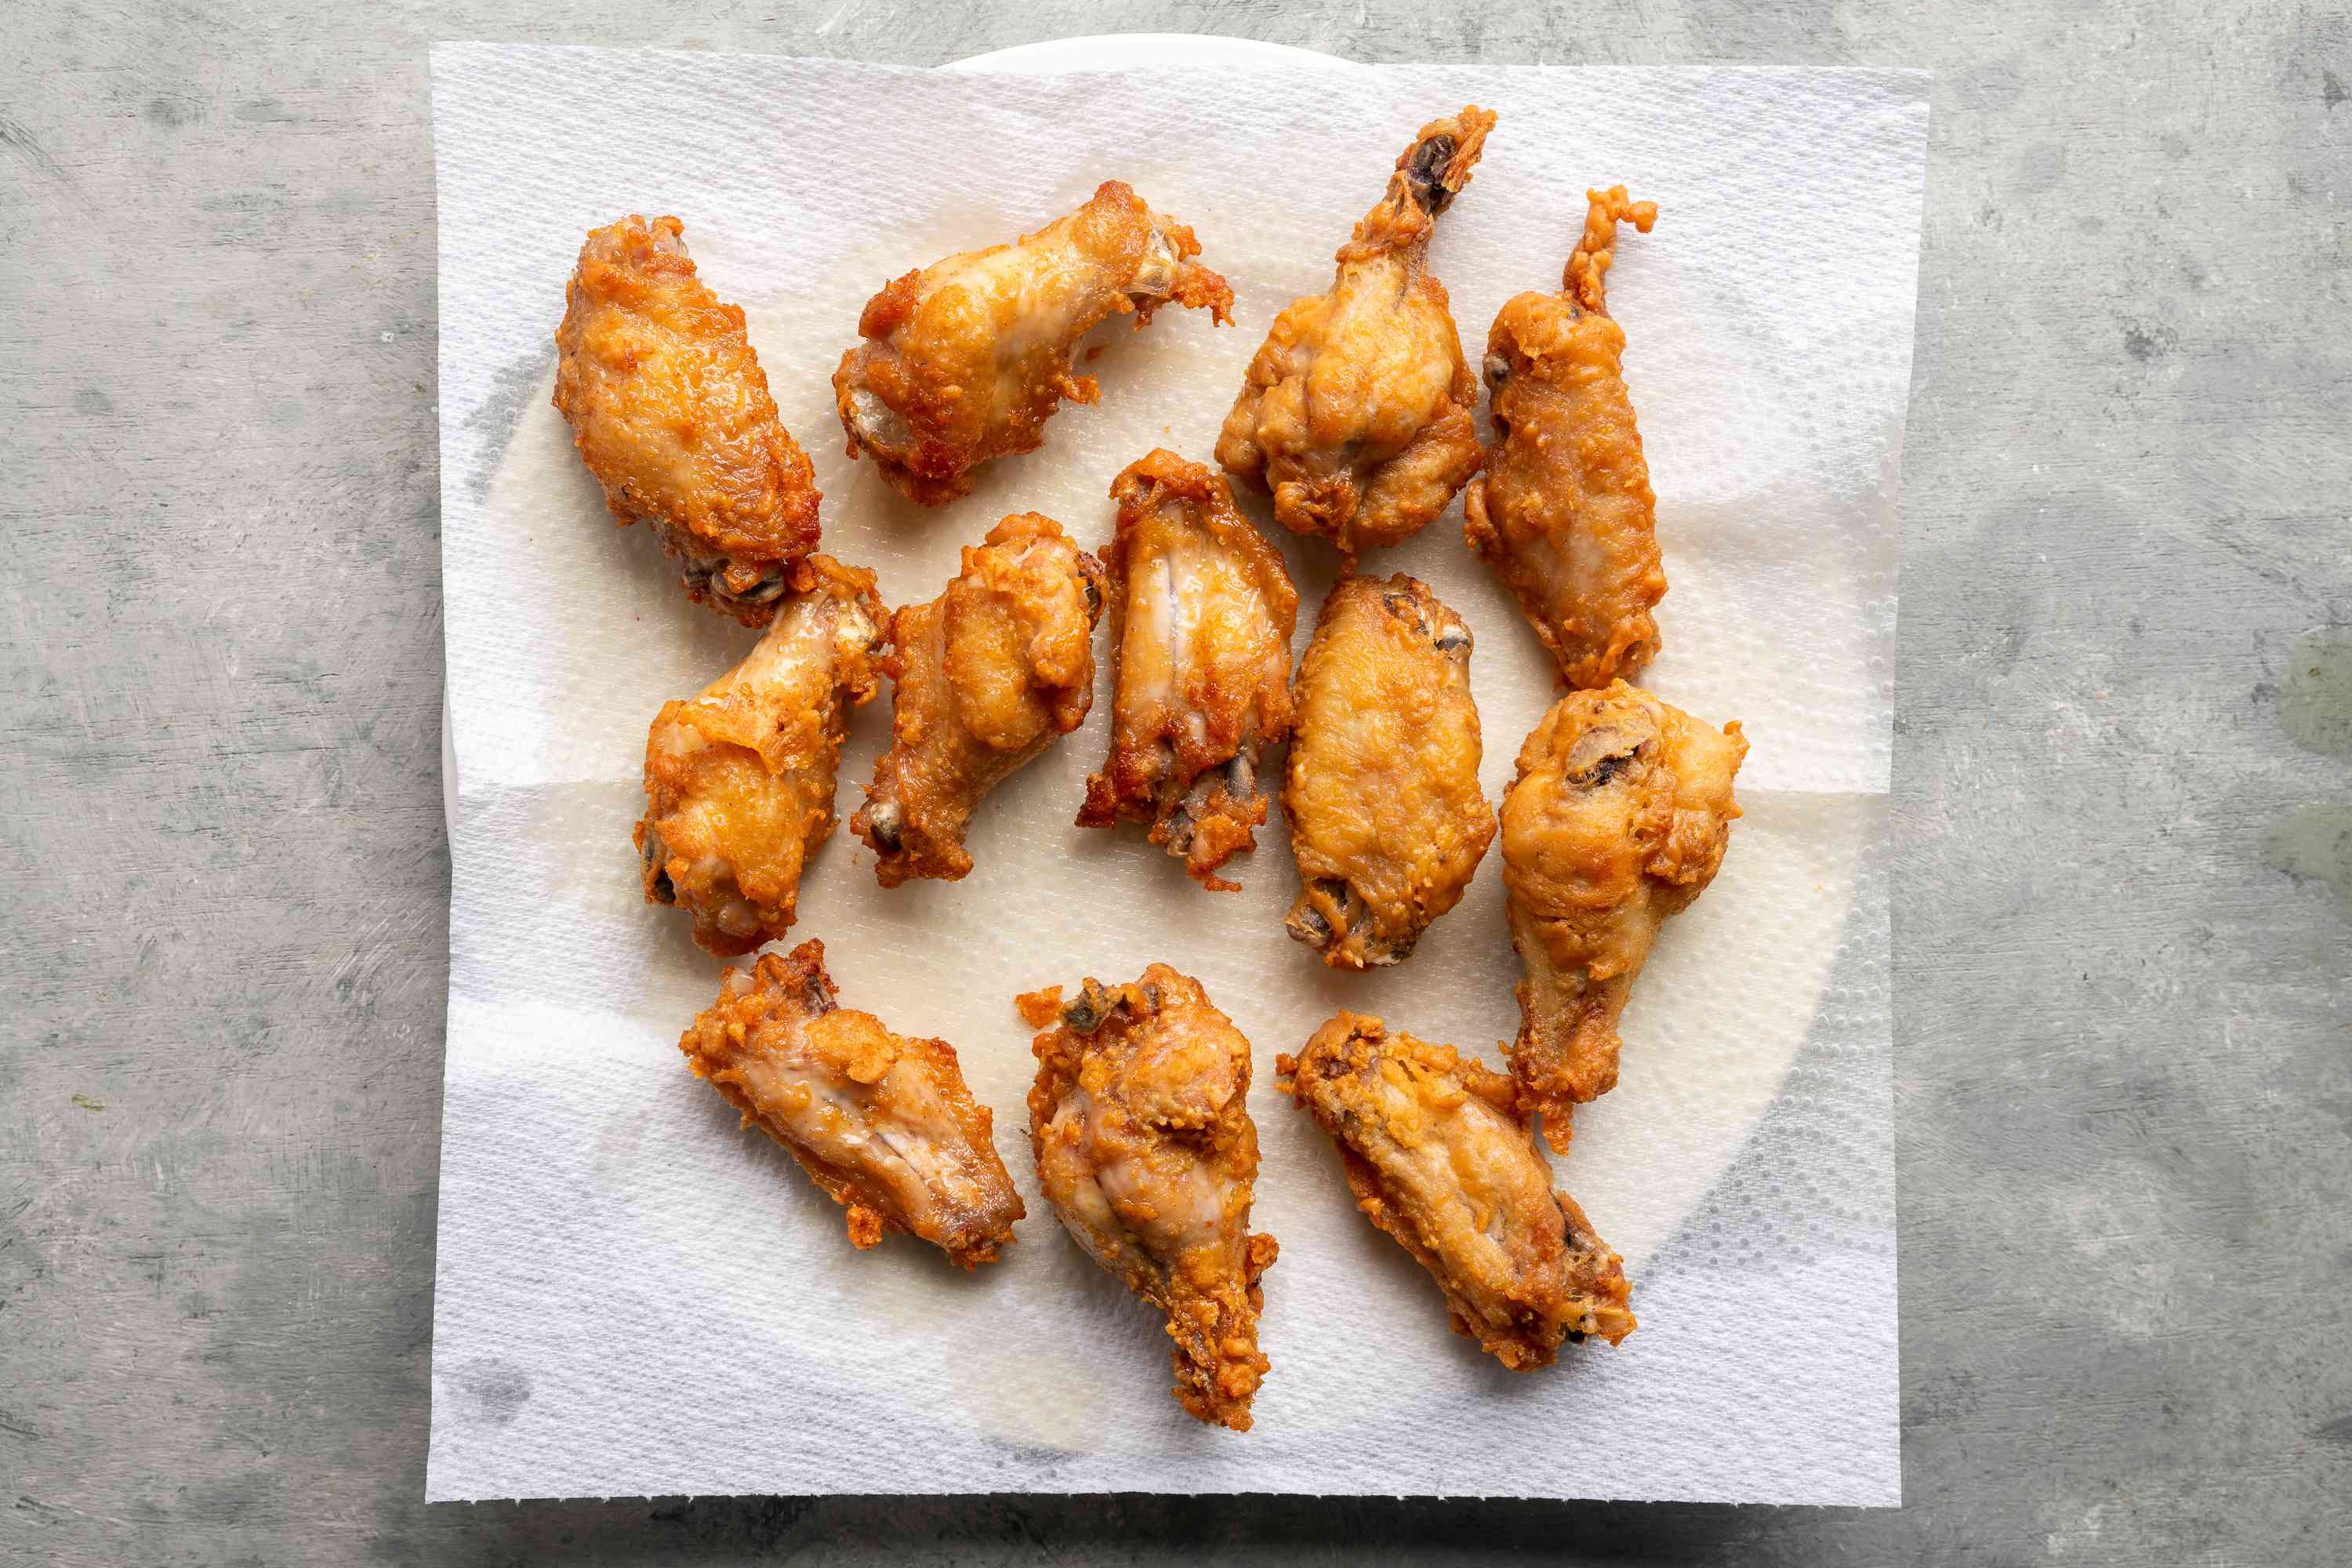 Fried chicken wings on a paper towel